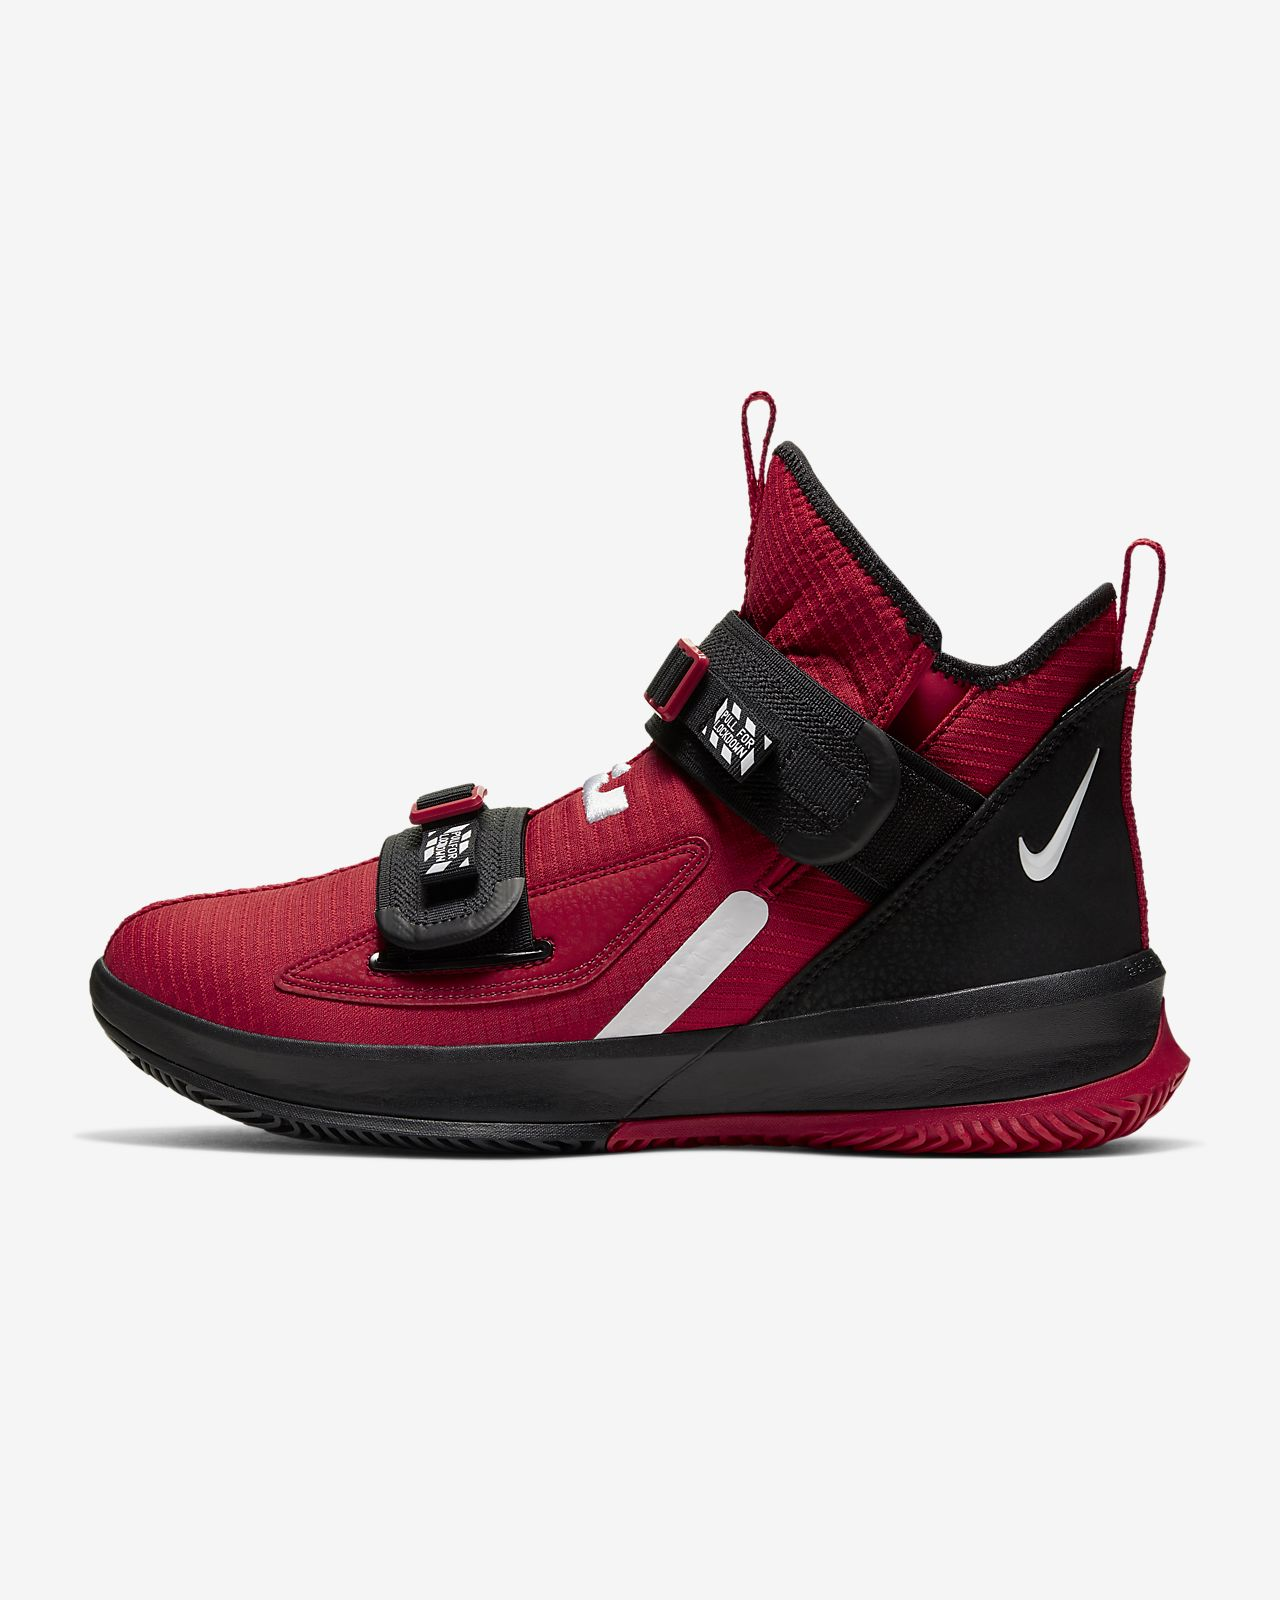 Chaussure de basketball LeBron Soldier 13 SFG